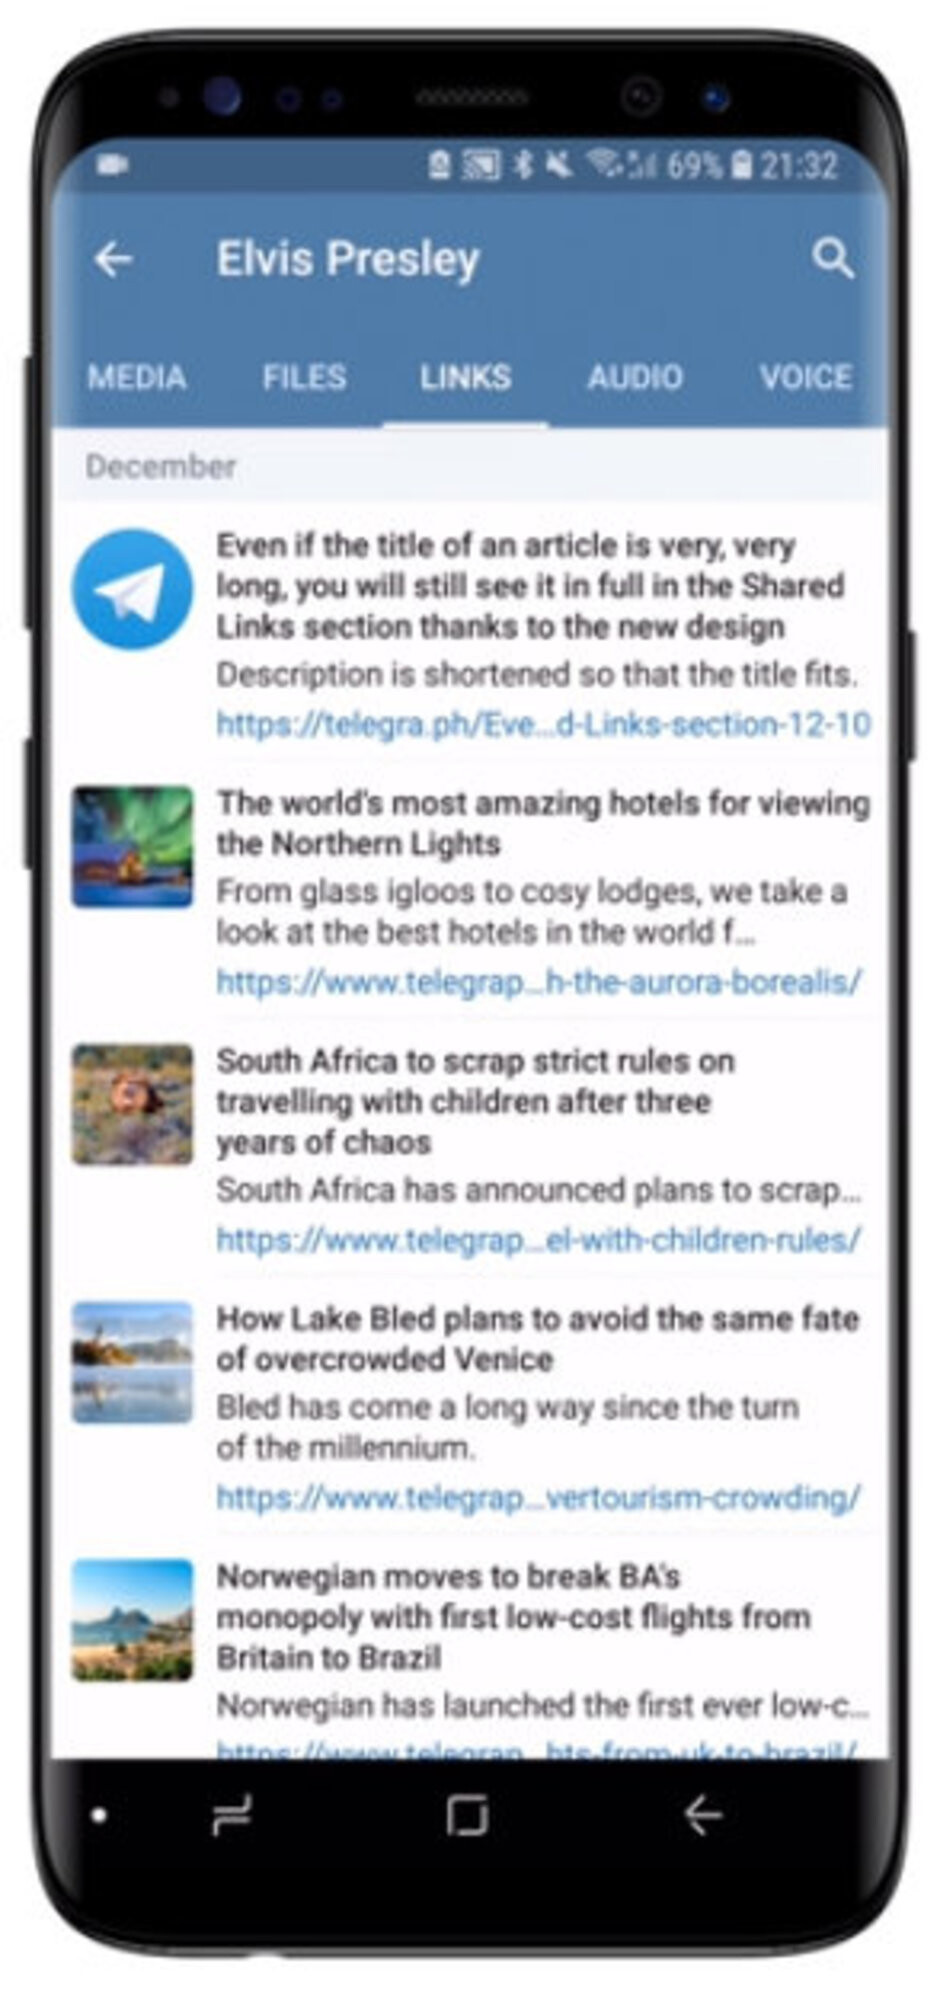 New design for Android - Telegram version 5.0 released with new design, new features galore